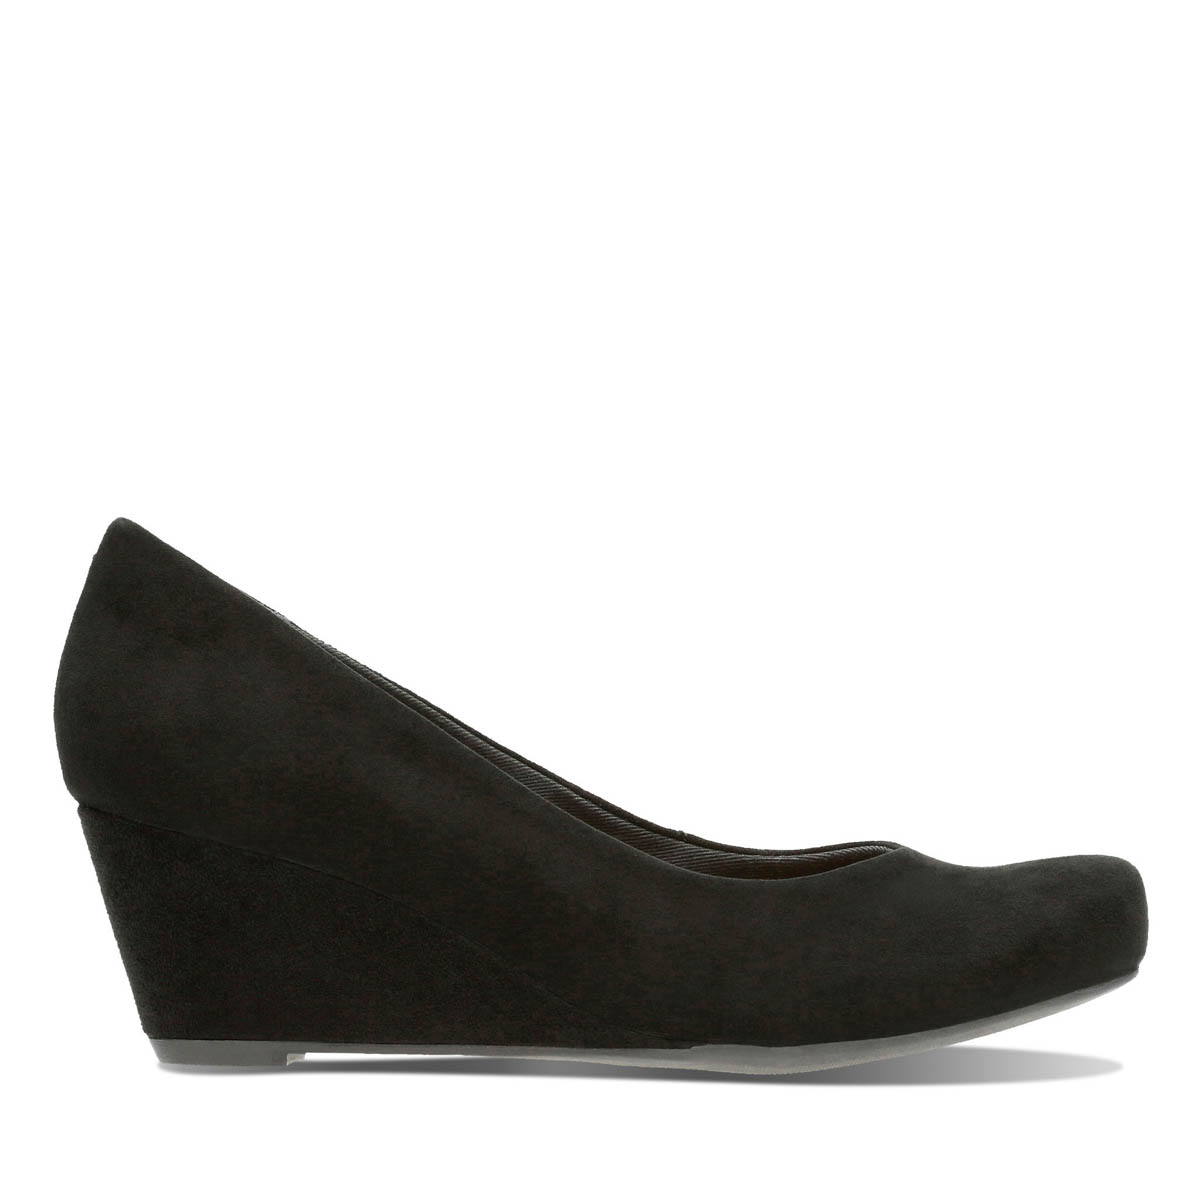 909082fd226c Clarks Wedge Shoes - Black suede - 2897 14D FLORES TULIP